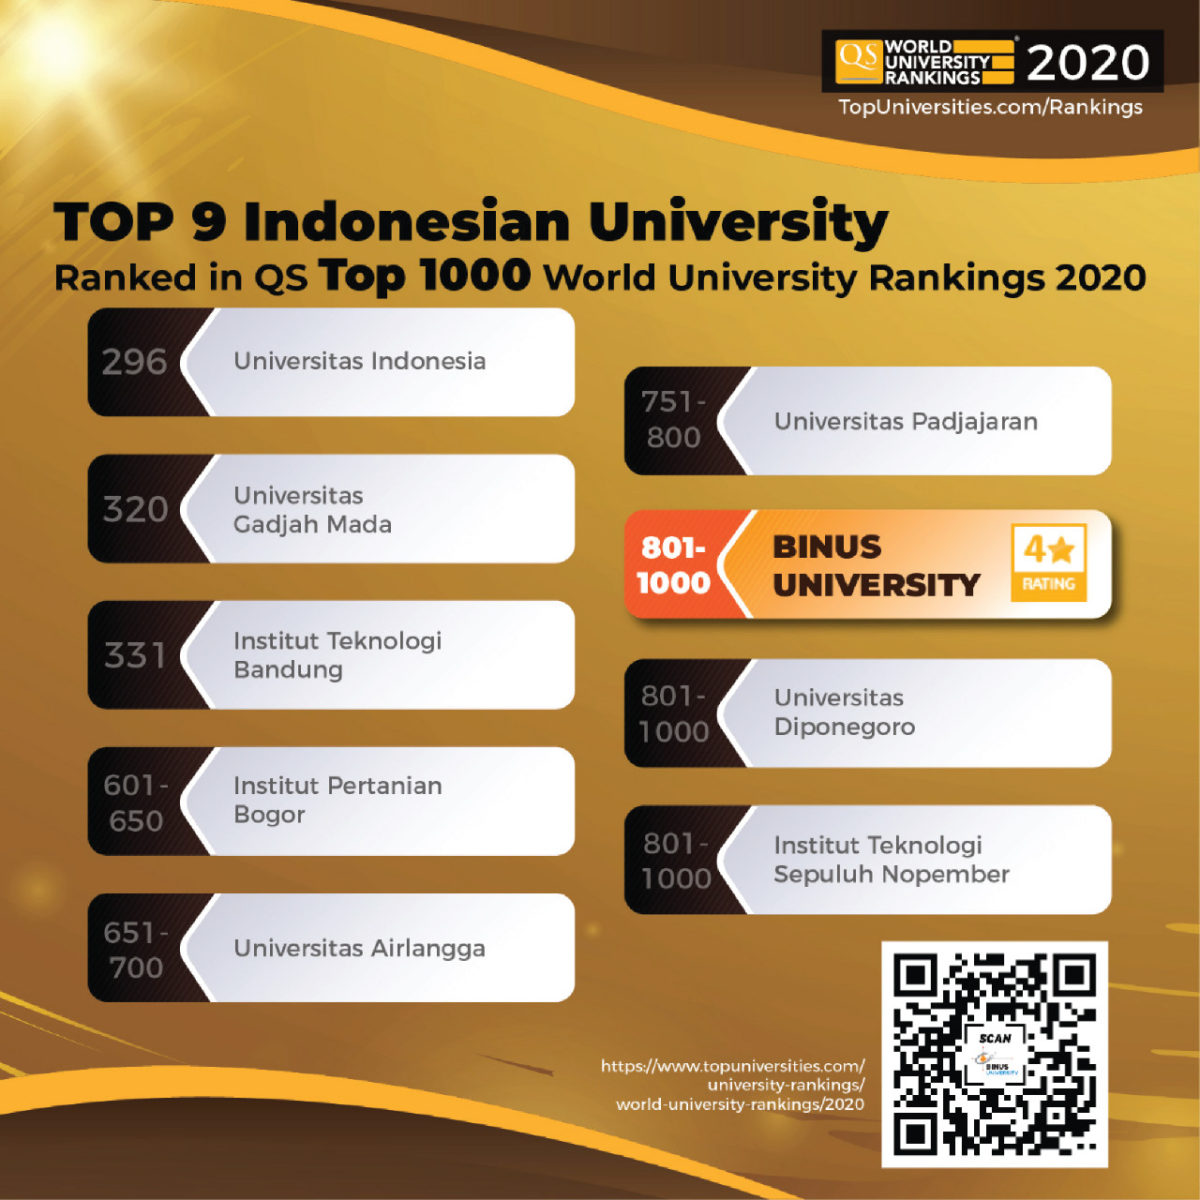 Binus University Achieves Global Recognition By Qs World University Rankings 2020